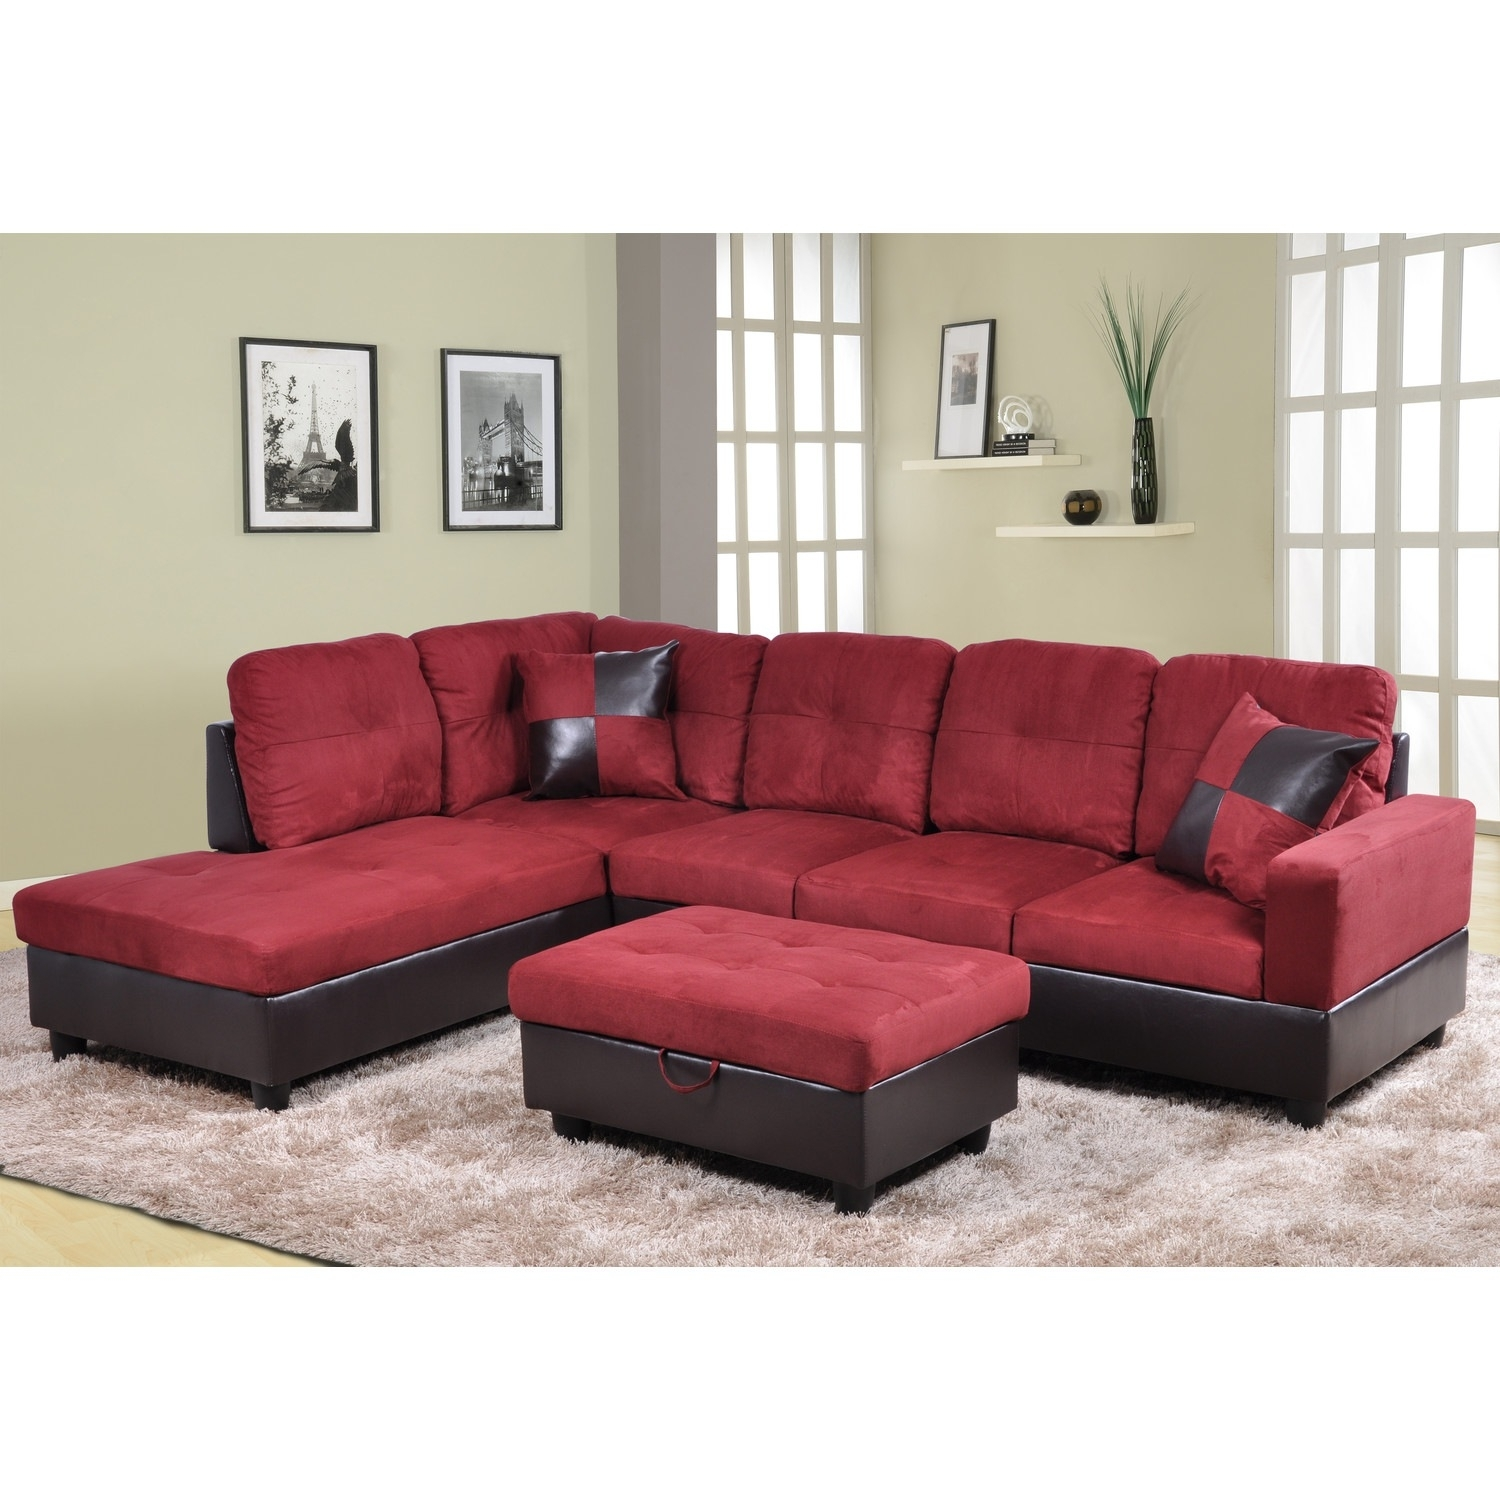 Cheap Sectional Sofas For Sale Inspirational Furniture Sears Sofa Inside Sears Sectional Sofas (Image 3 of 10)